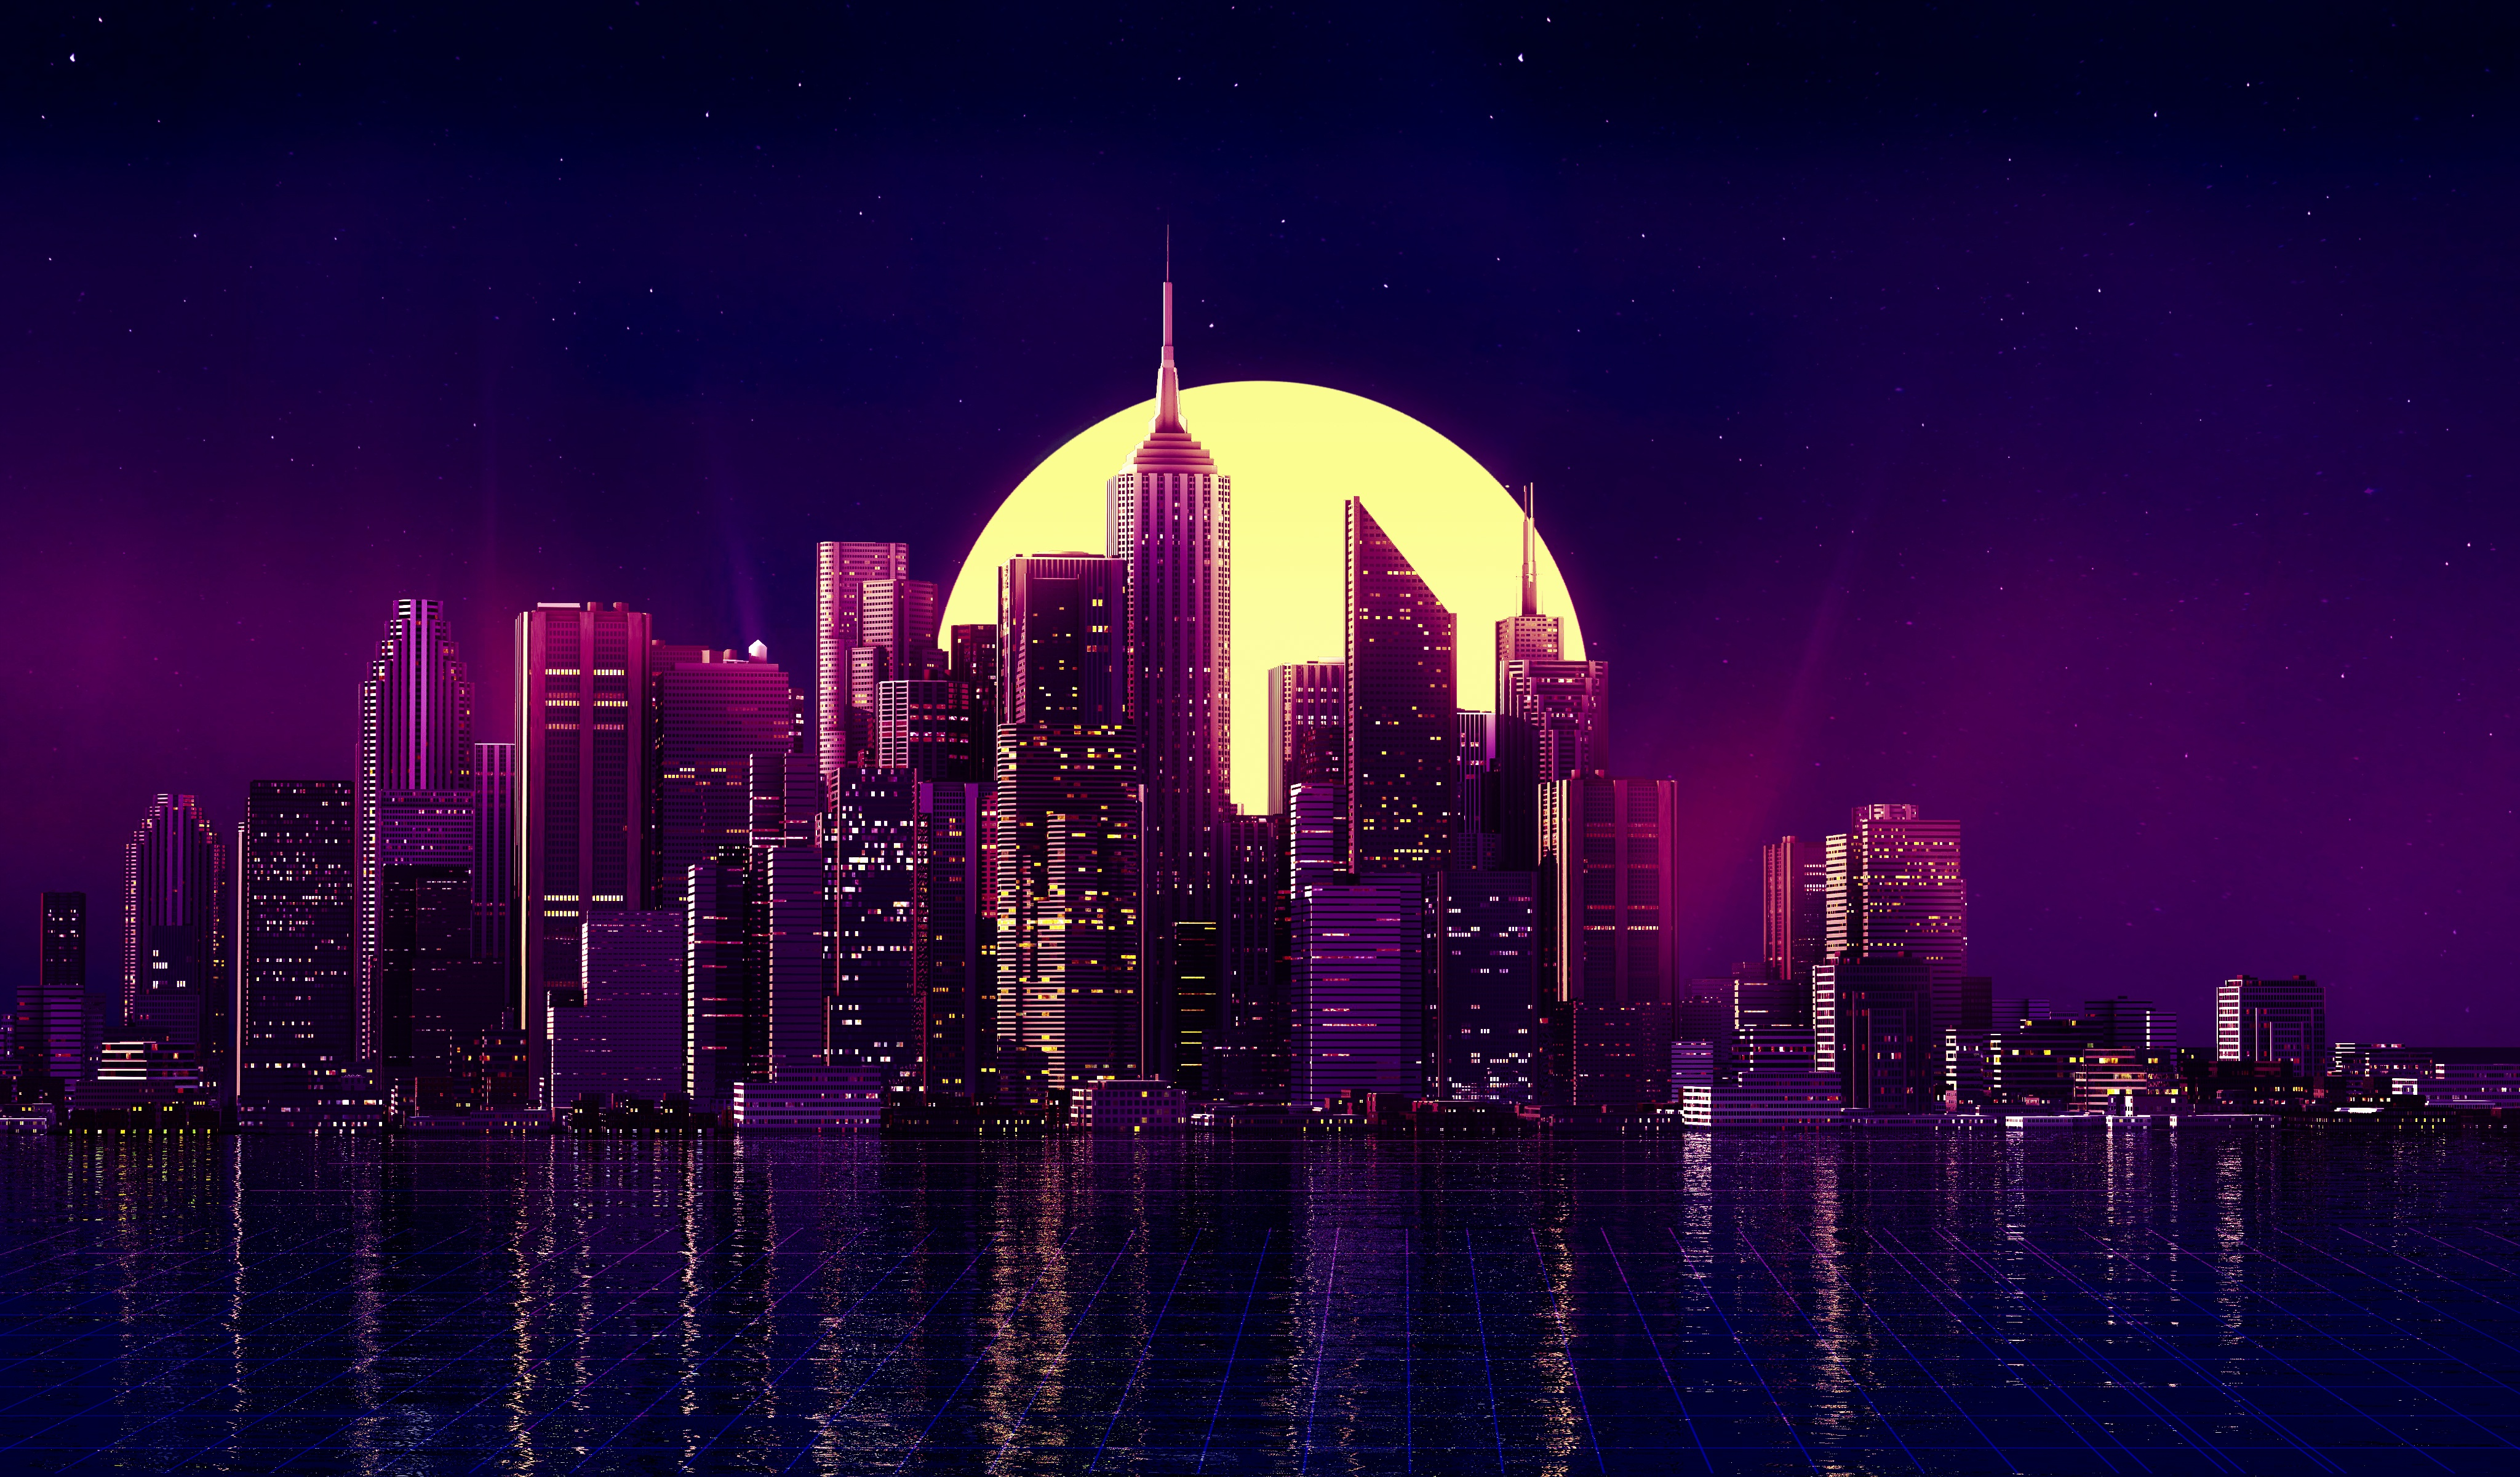 Neon City Buildings Reflection Skycrapper Minimalism 4k Hd Artist 4k Wallpapers Images Backgrounds Photos And Pictures